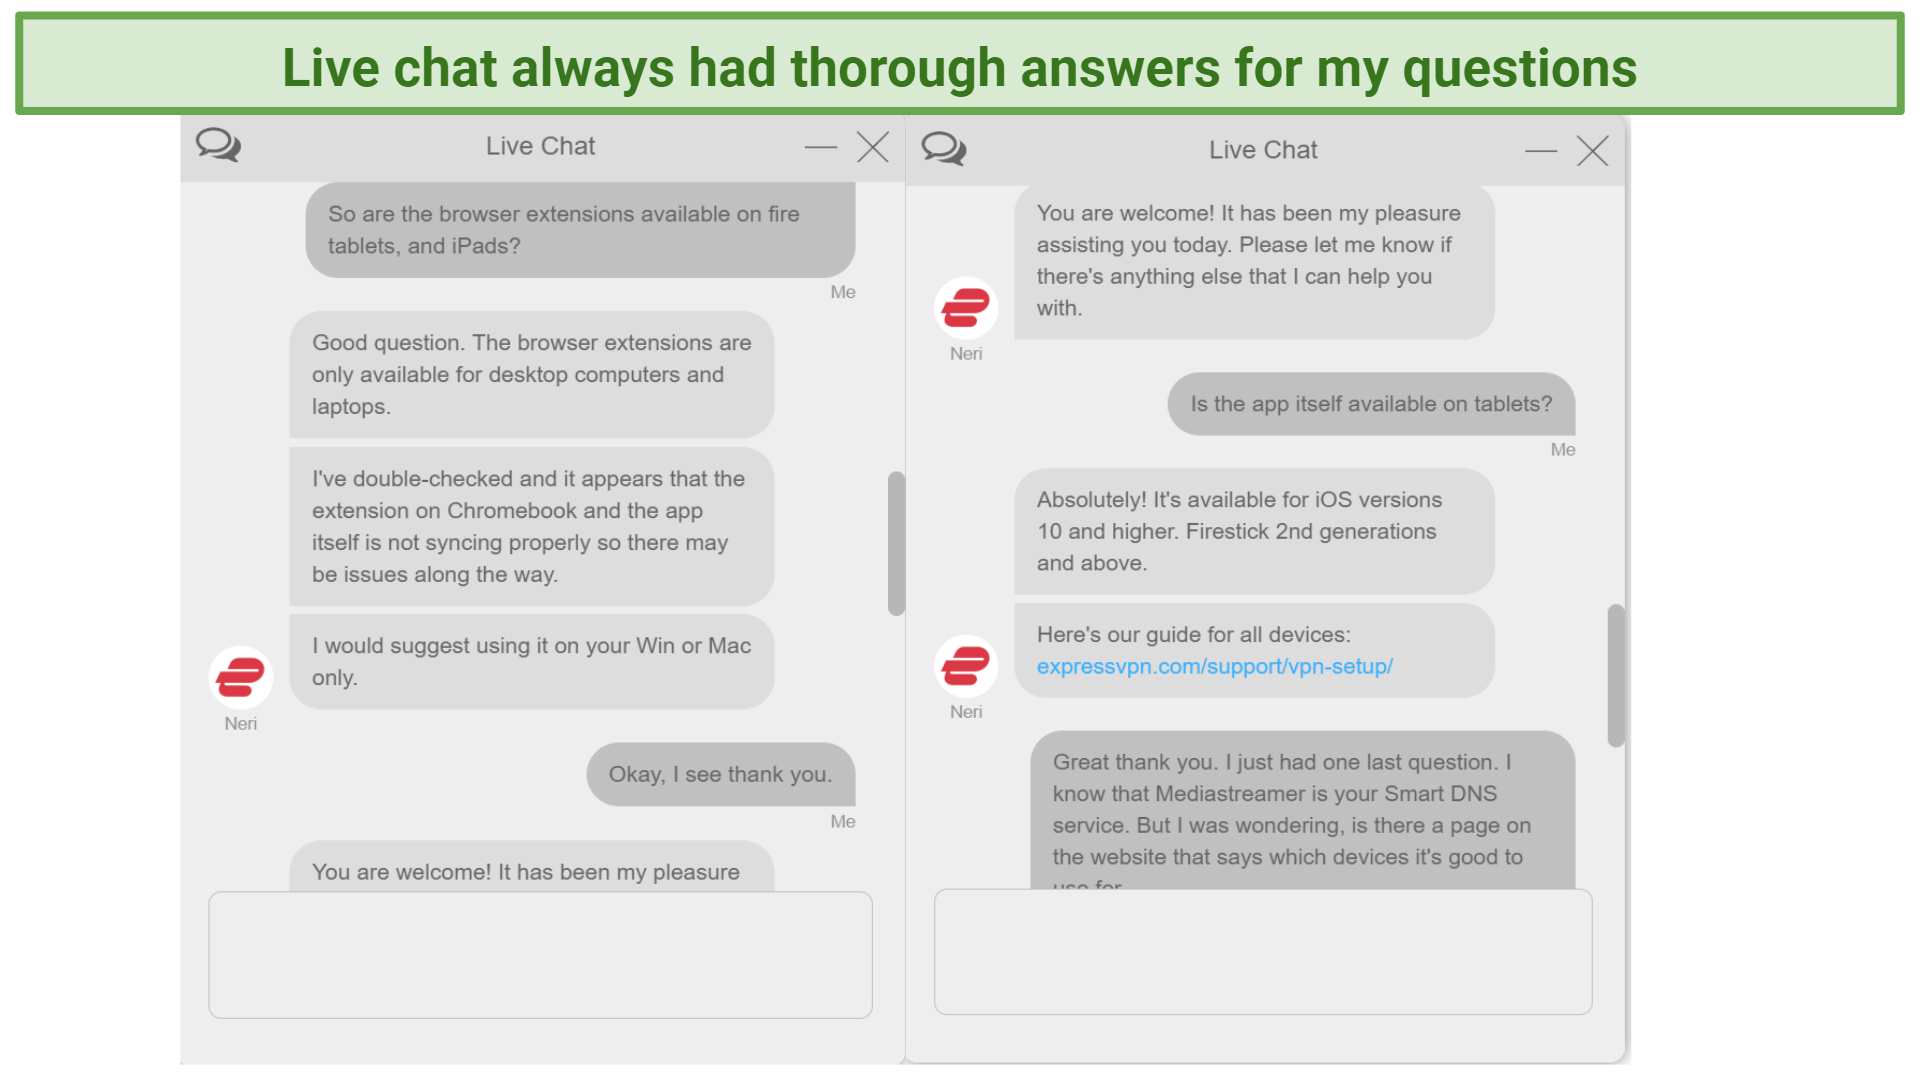 Screenshot of live chat support agent answering questions about Chromebook and tablets